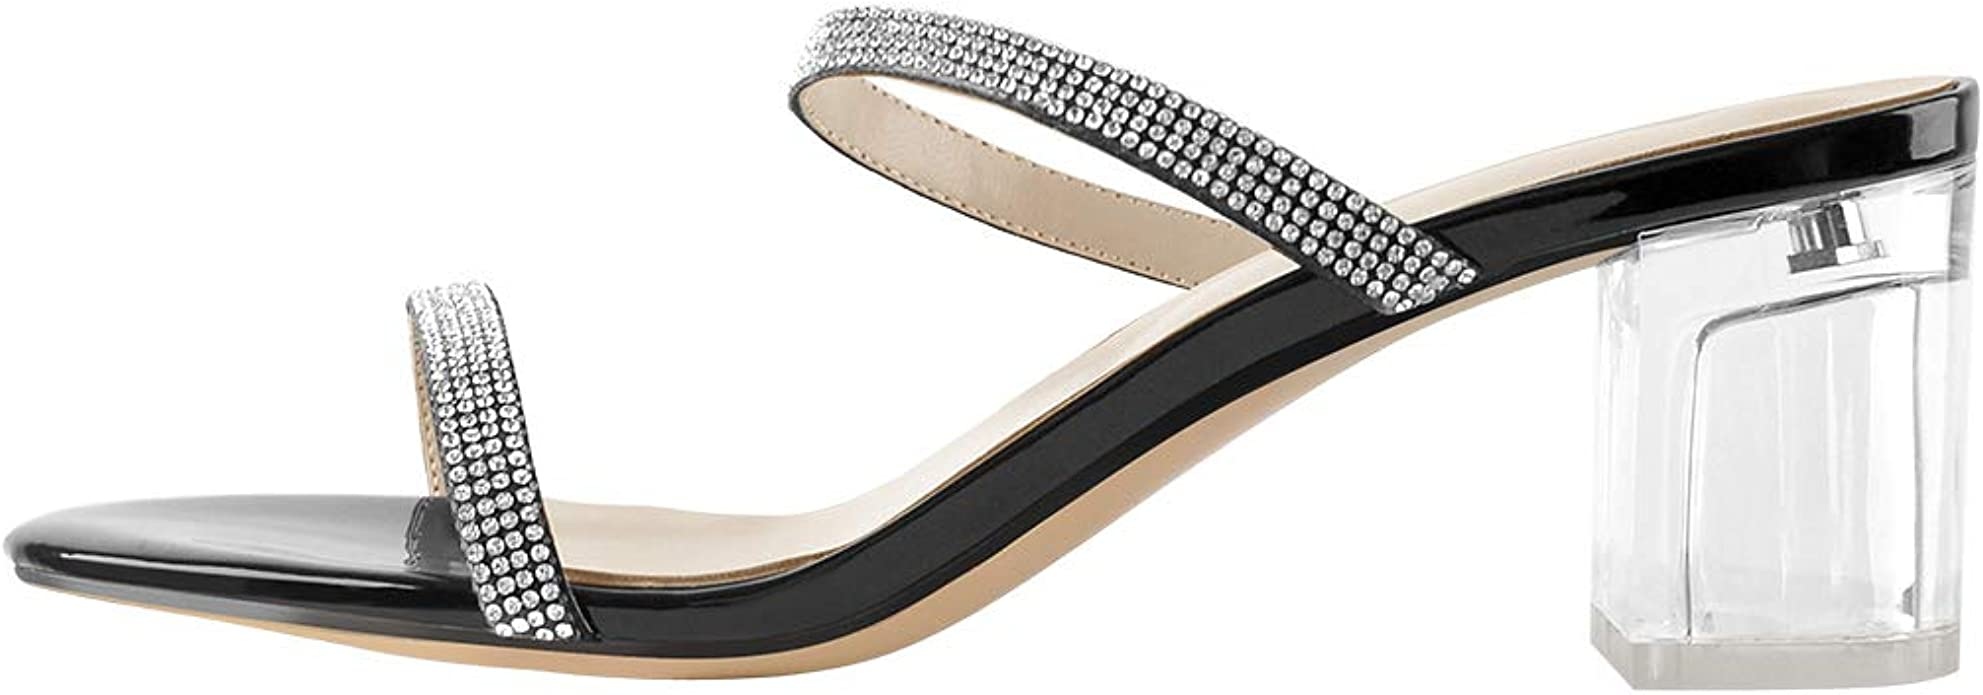 Details about  /Women/'s Open Toe Hollow out Sandals Block Mid Heel Rhinestones Dress Party Shoes